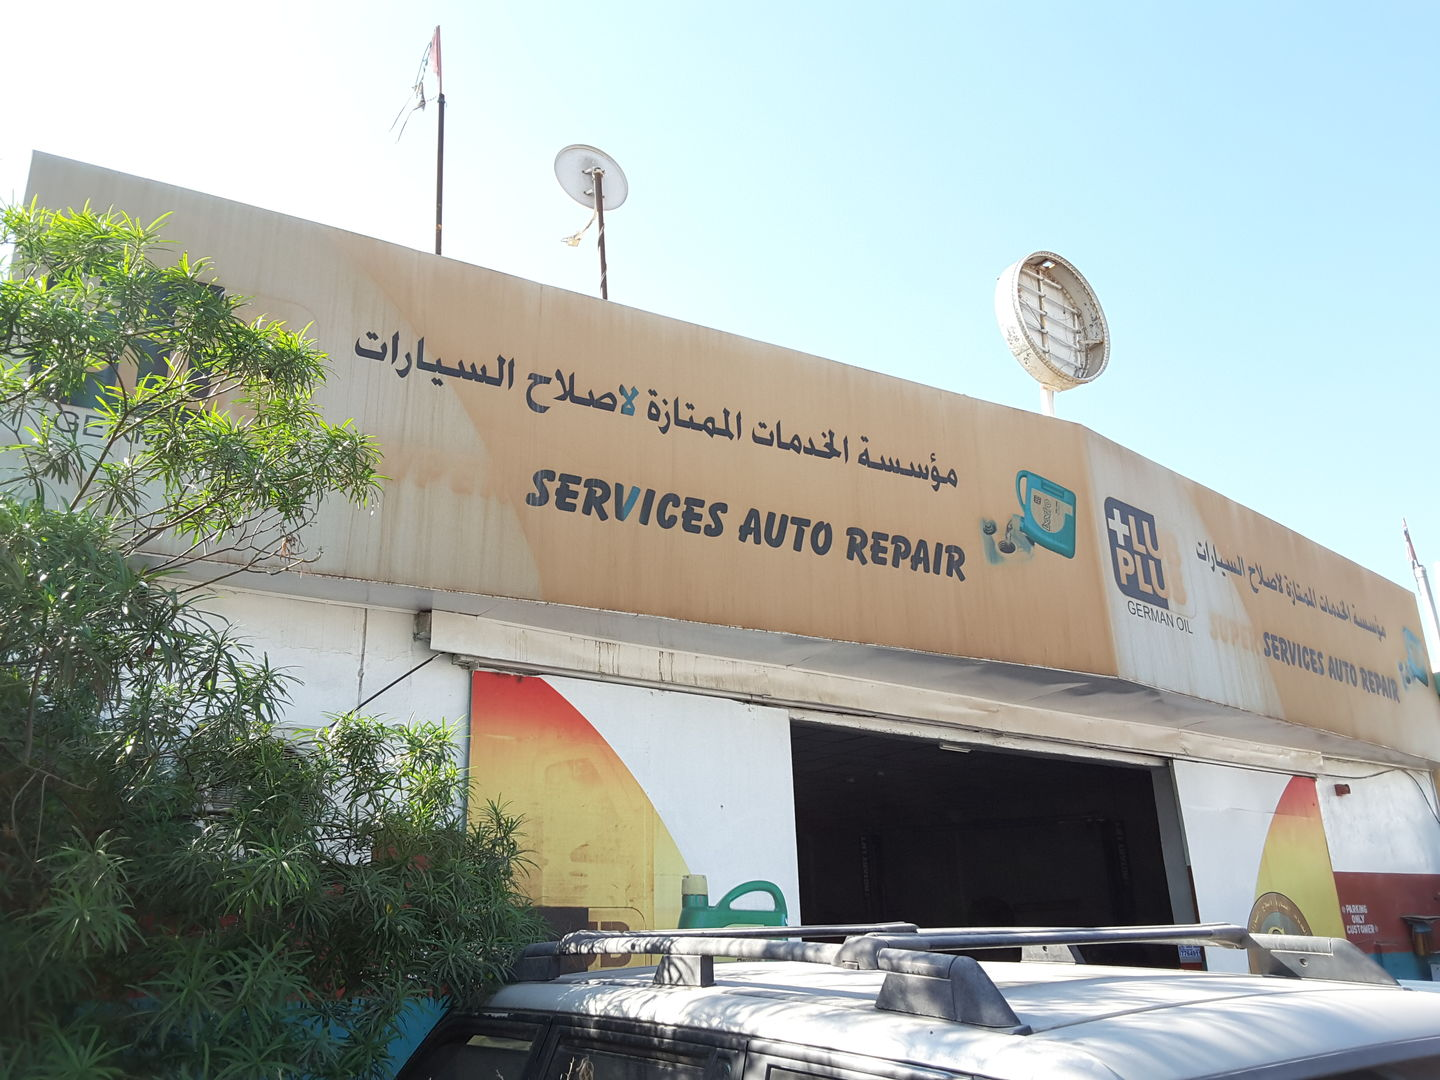 HiDubai-business-super-services-auto-repair-est-transport-vehicle-services-car-assistance-repair-al-khabaisi-dubai-2